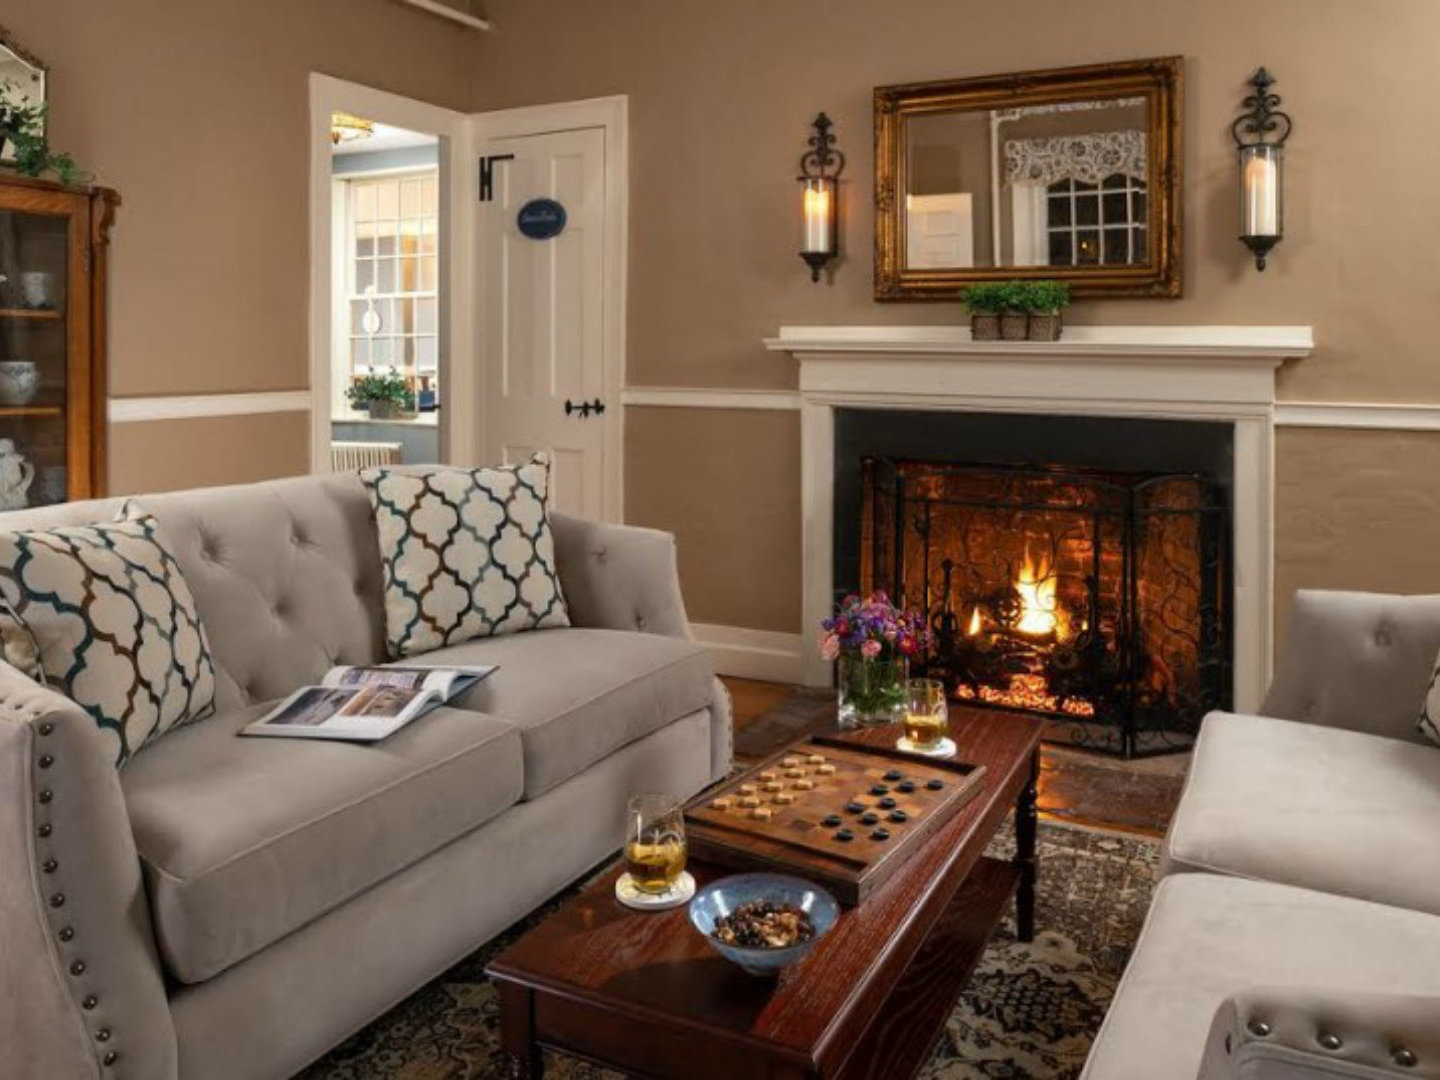 A living room filled with furniture and a fire place at The Captain Swift Inn.